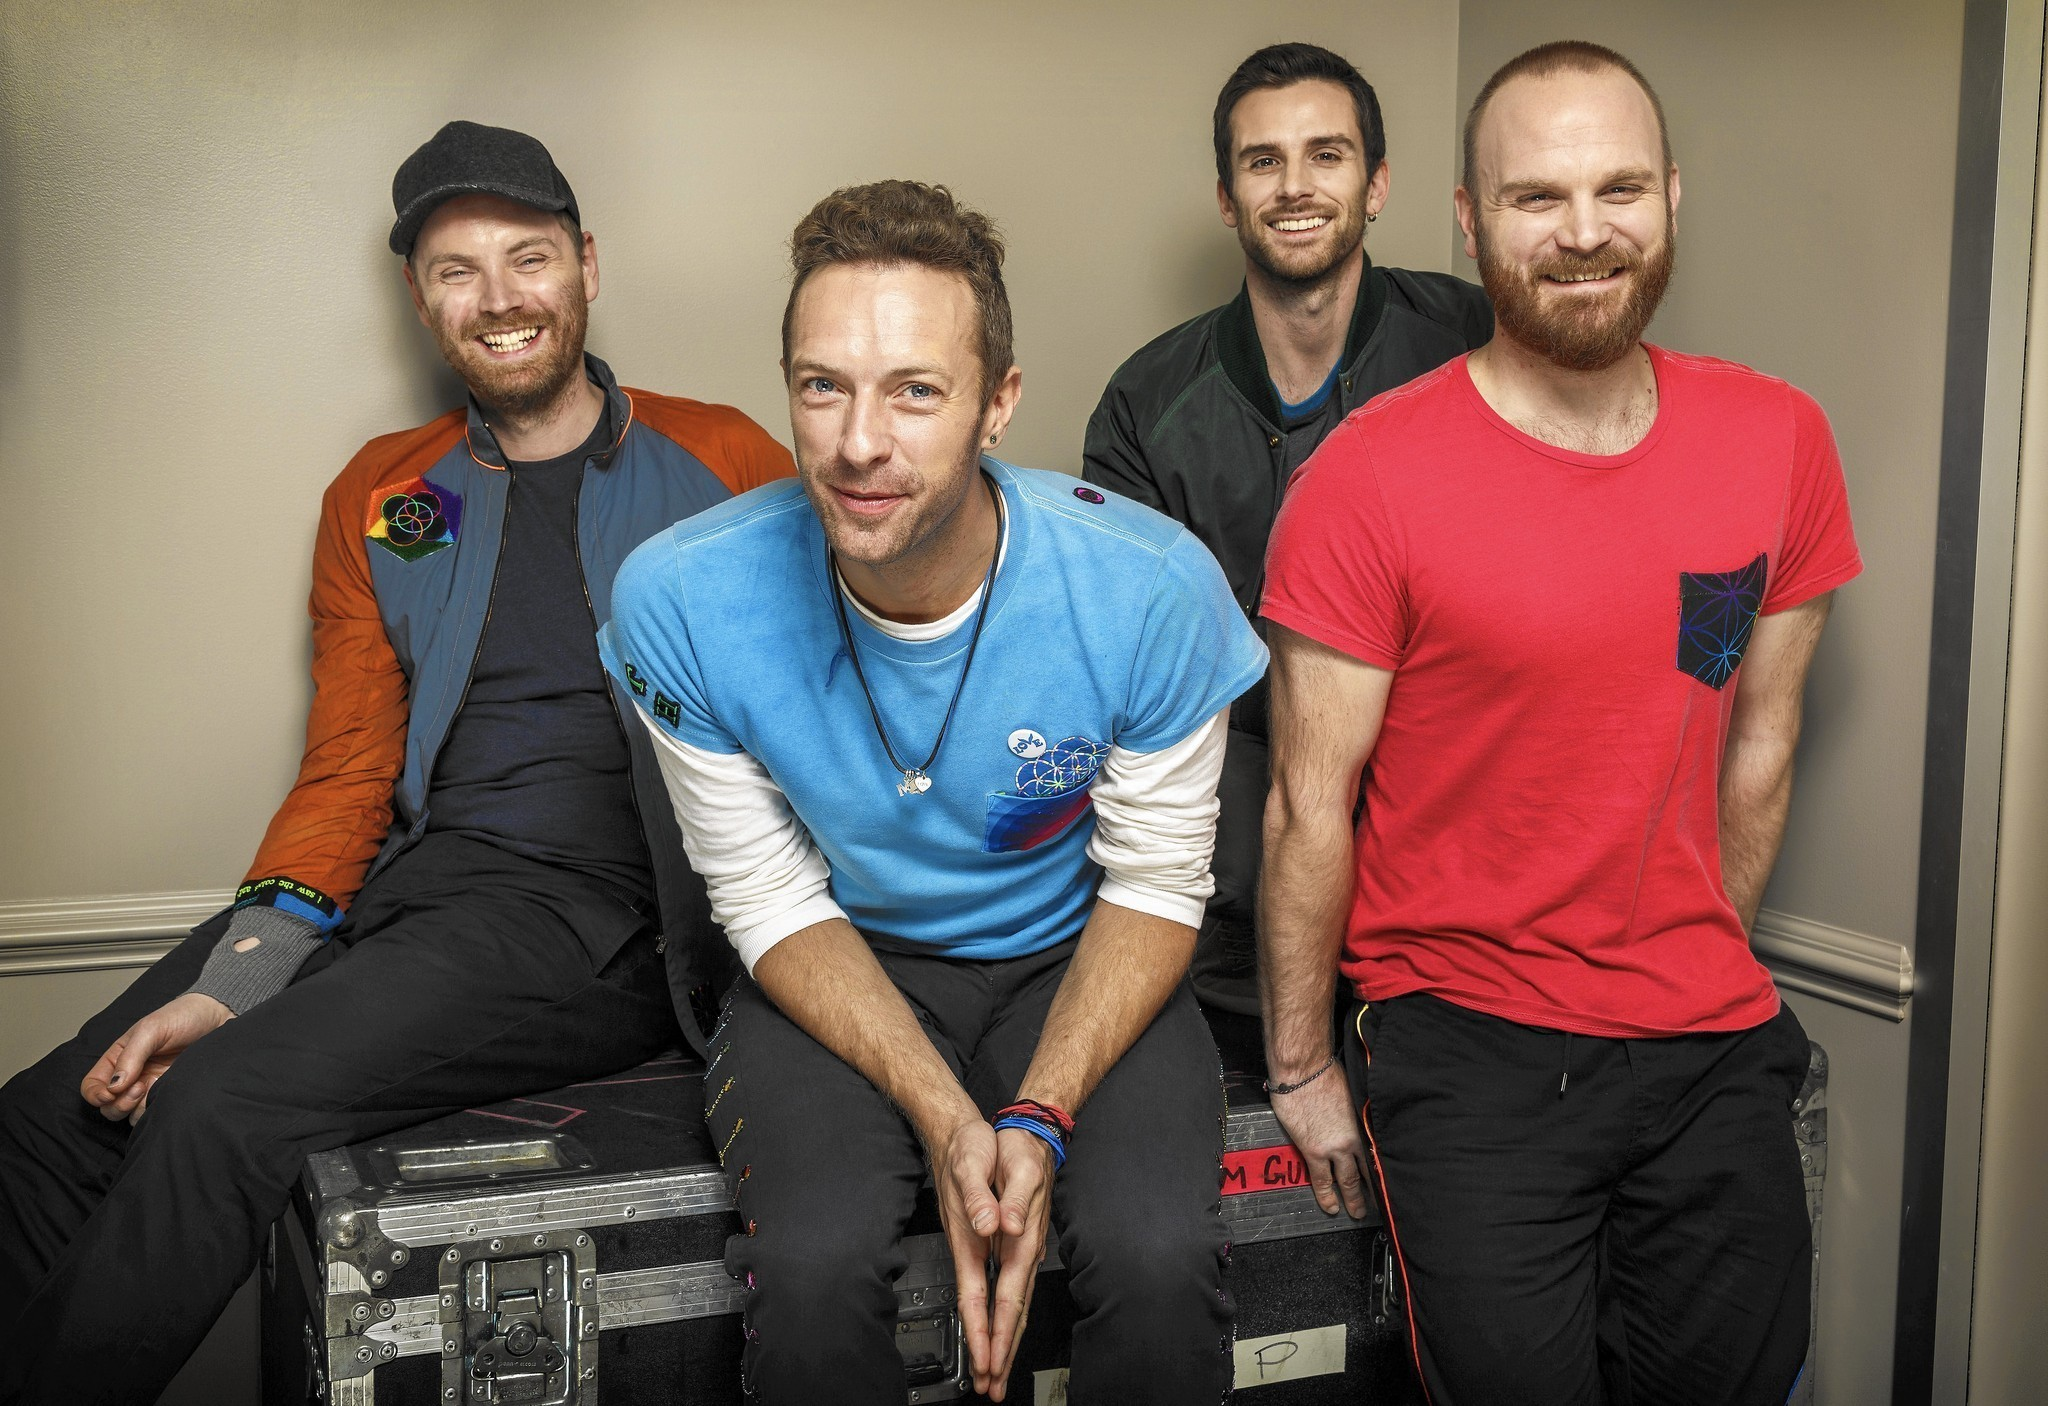 Hook up coldplay